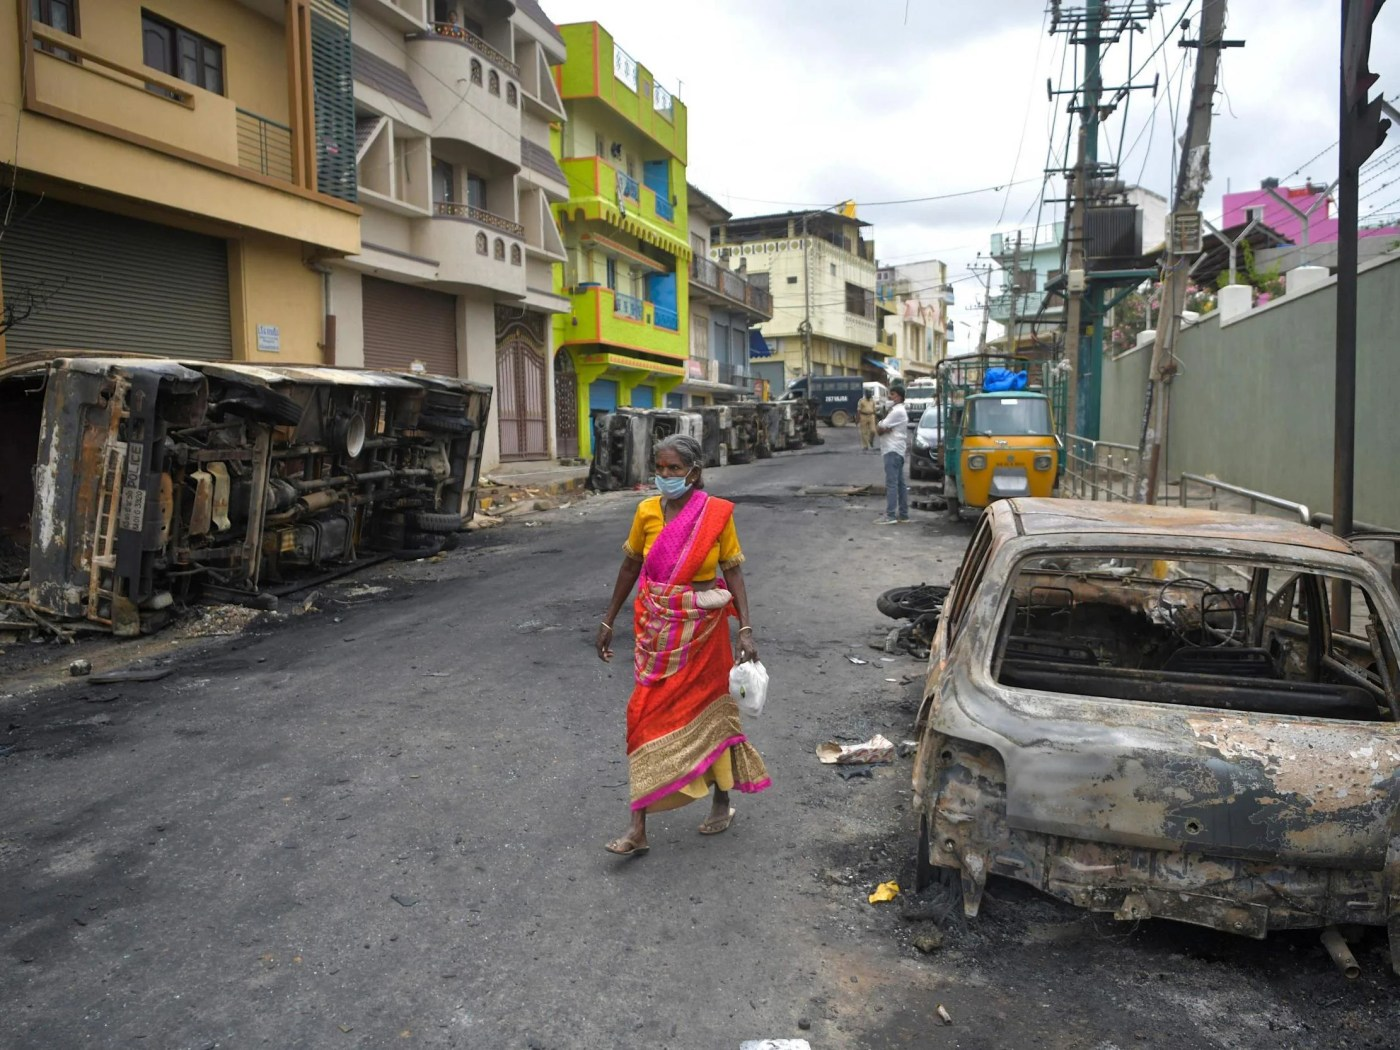 A resident walks past the burned-out remains of a car following protests in the city of Bengaluru, India, over a Facebook post about the Prophet Mohammed.